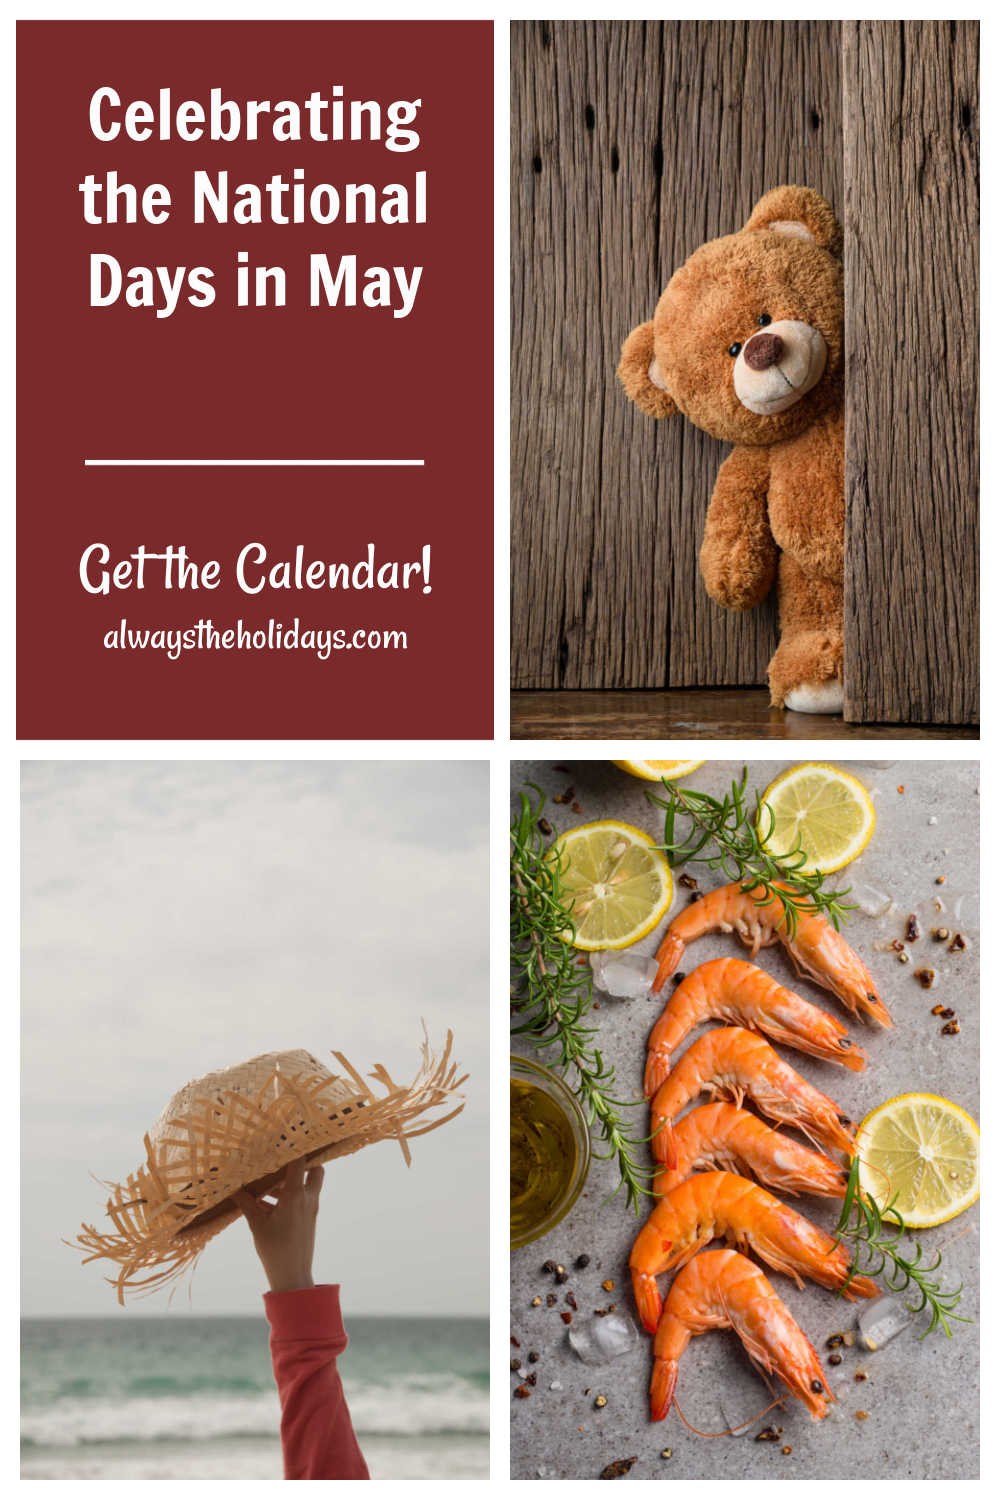 Teddy bear, shrimp and straw hat with words reading celebrating the National Days in May - Get the calendar